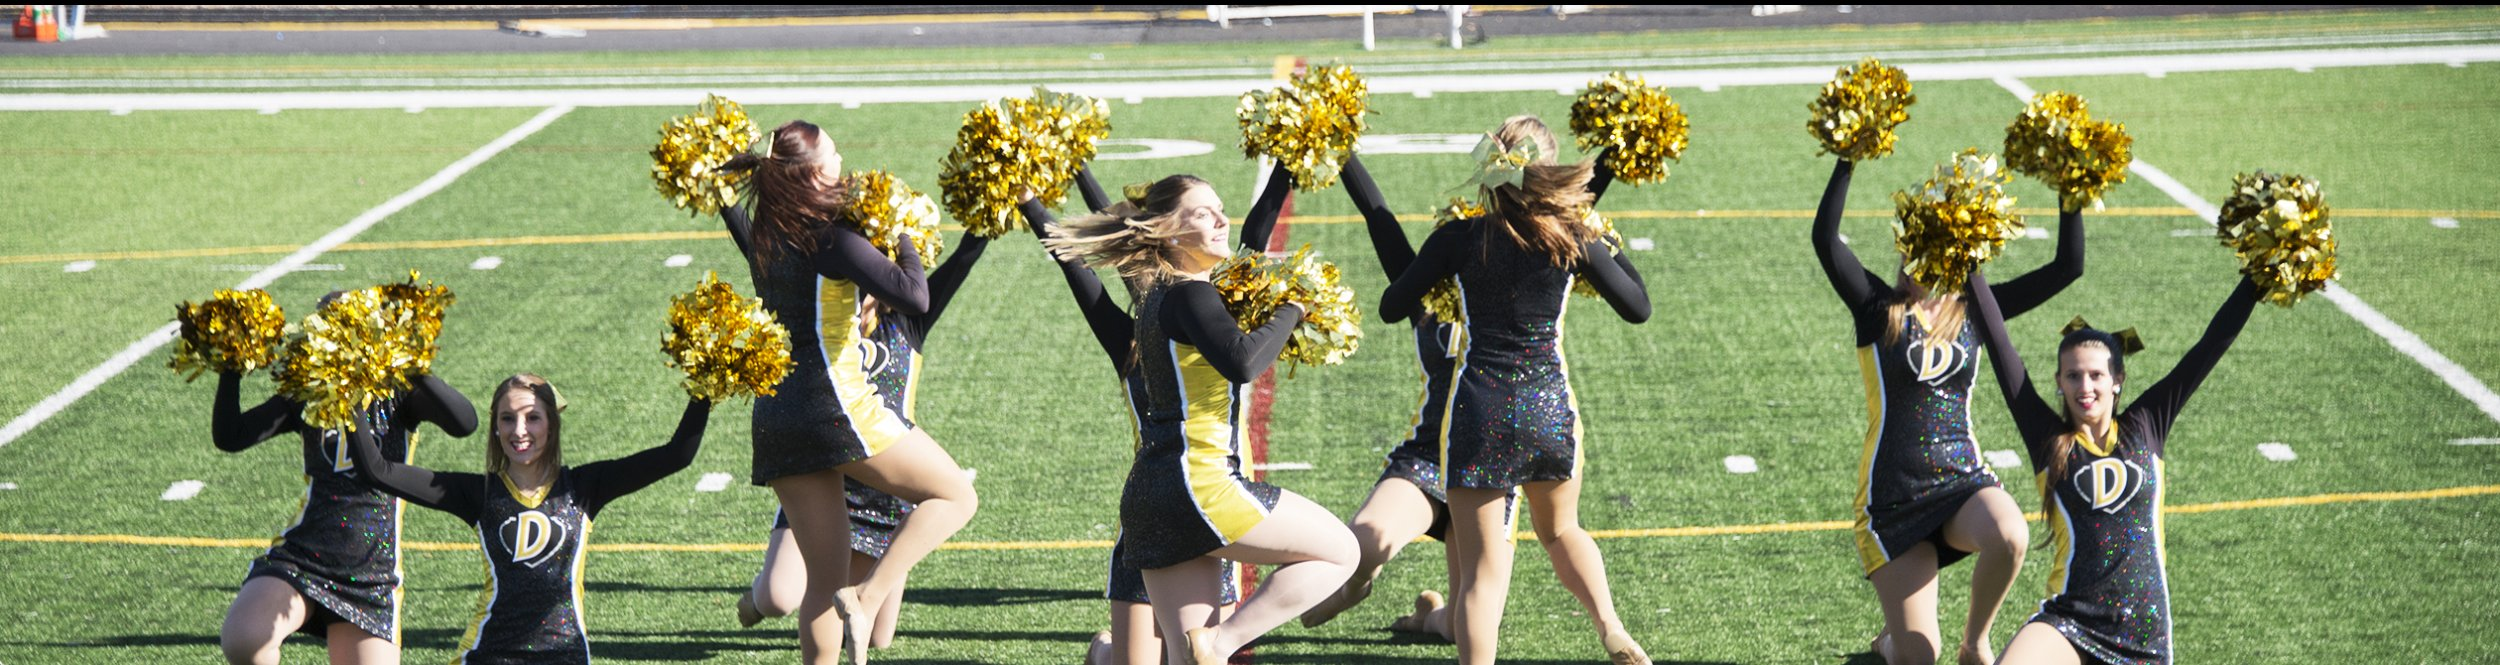 The women's dance team raises their pom poms on the field.